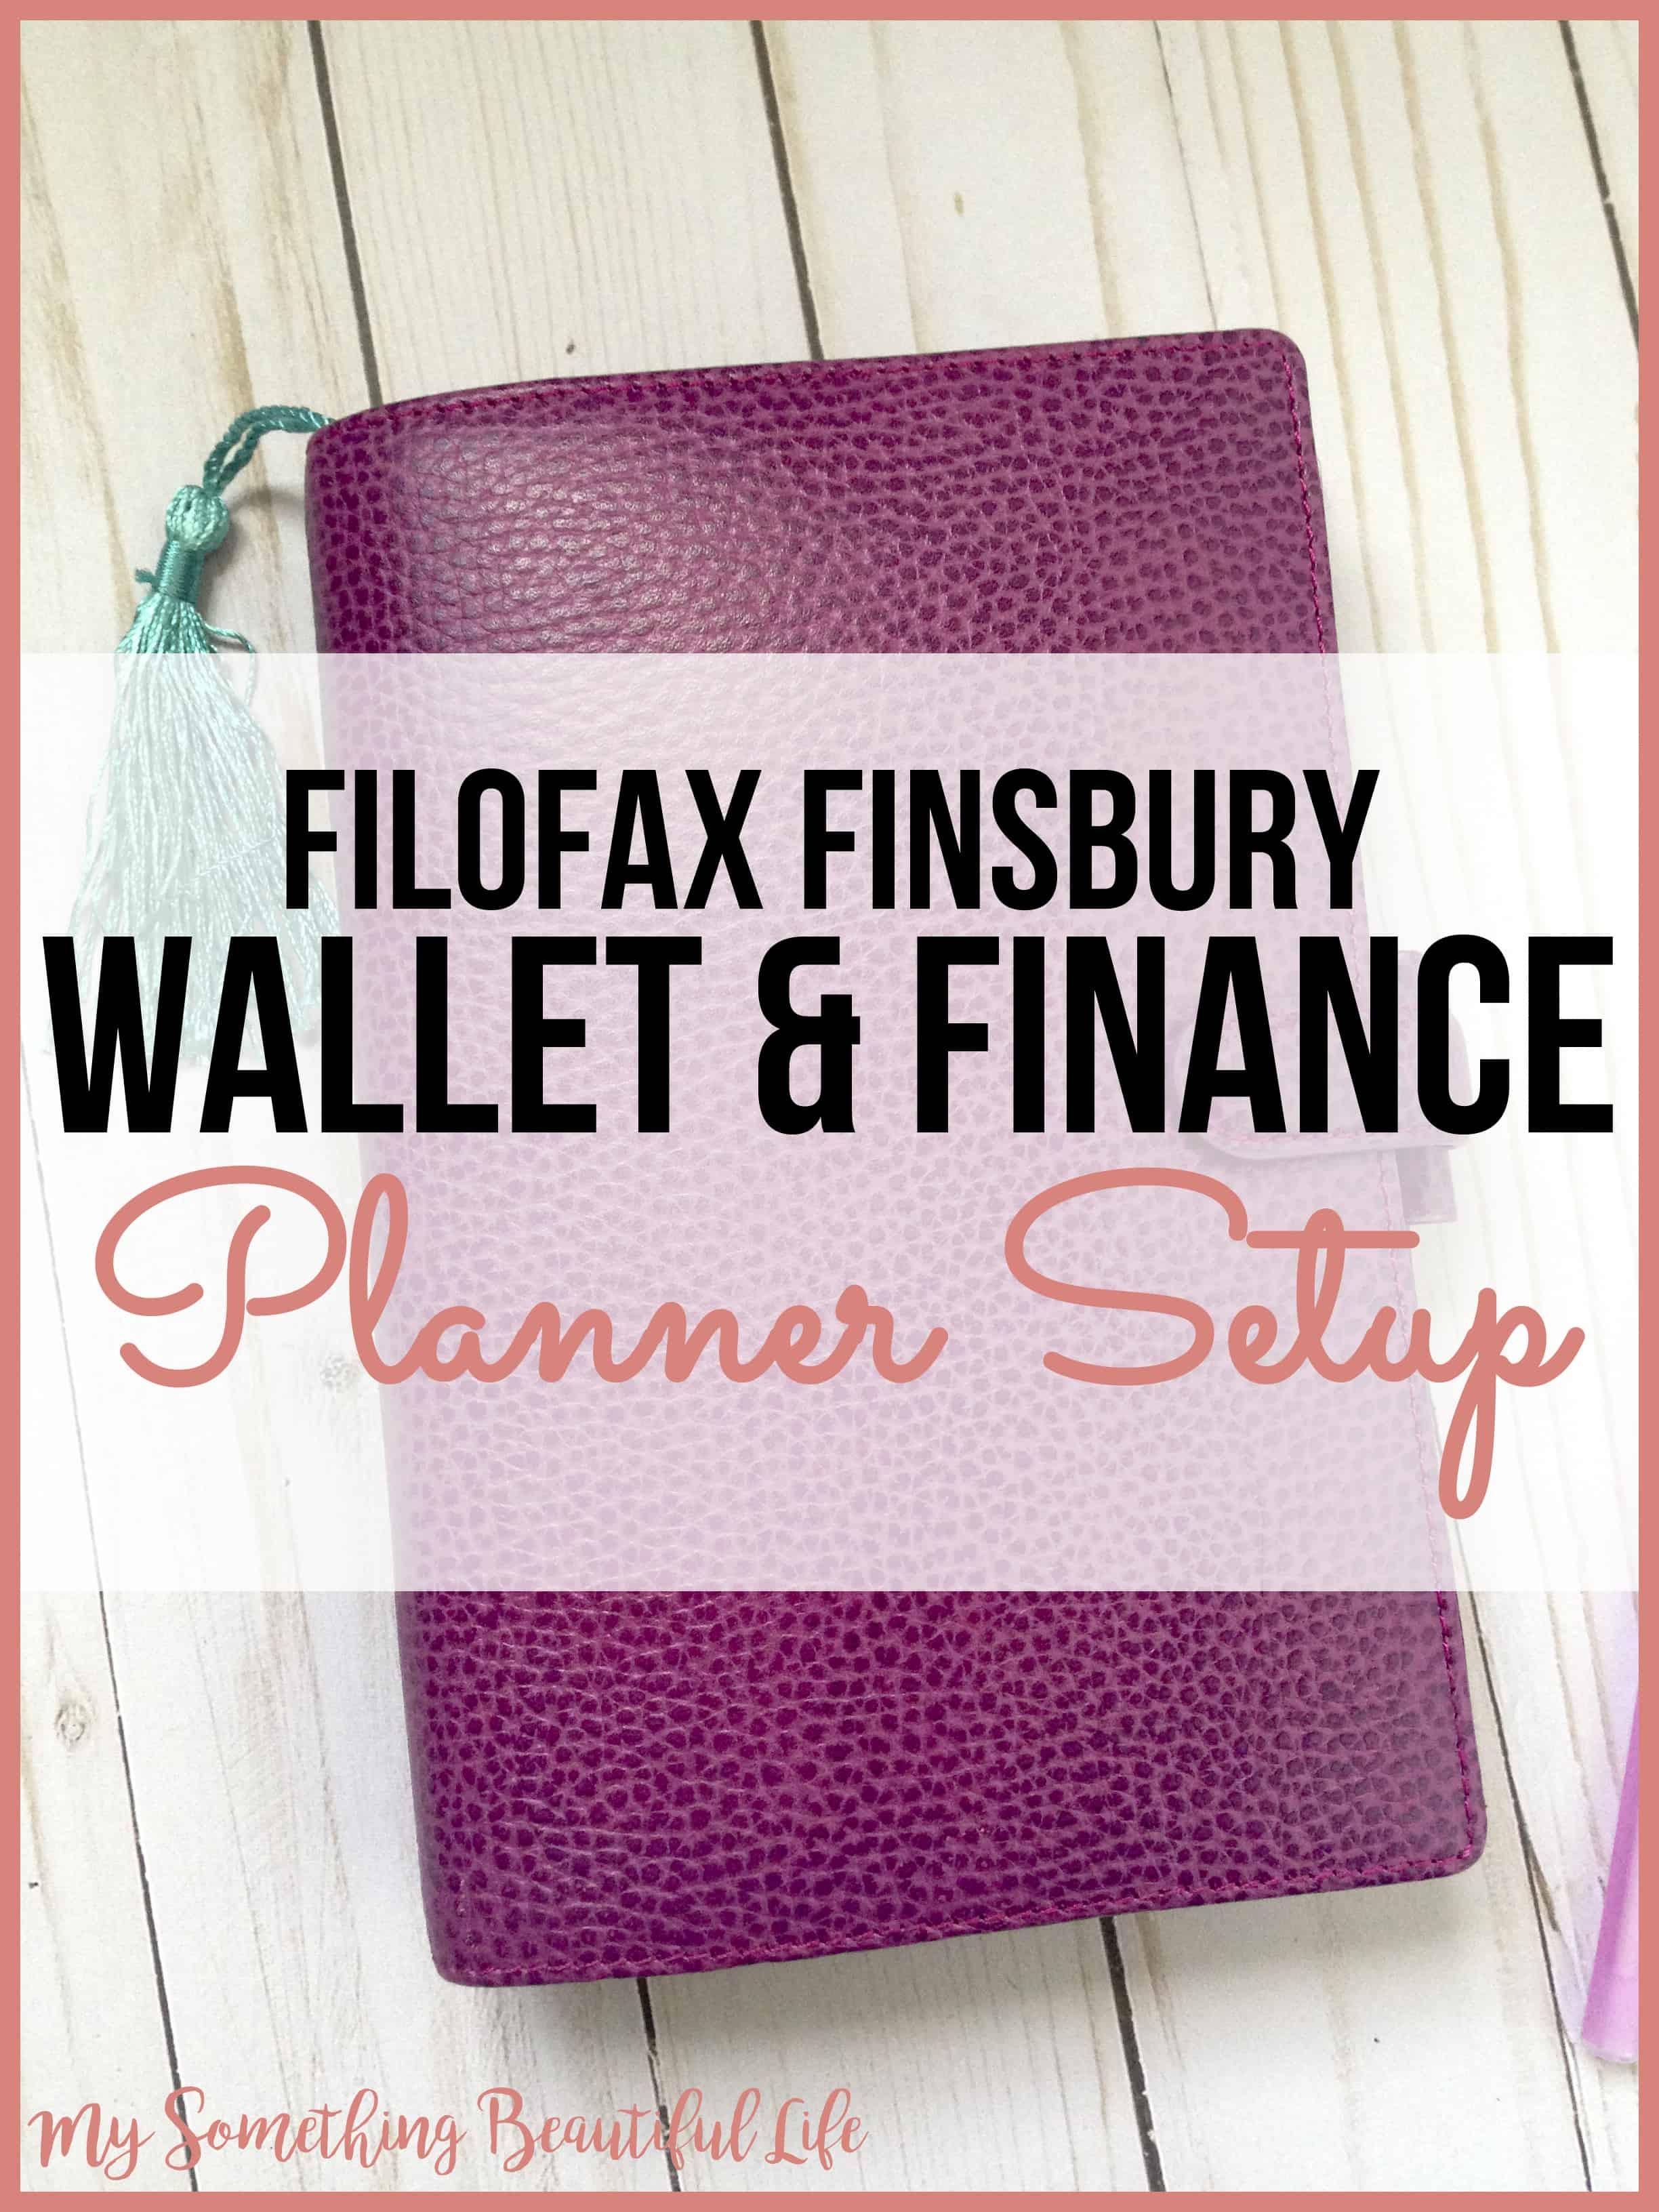 Using a Filofax Personal Finsbury for my wallet and Finance Planner